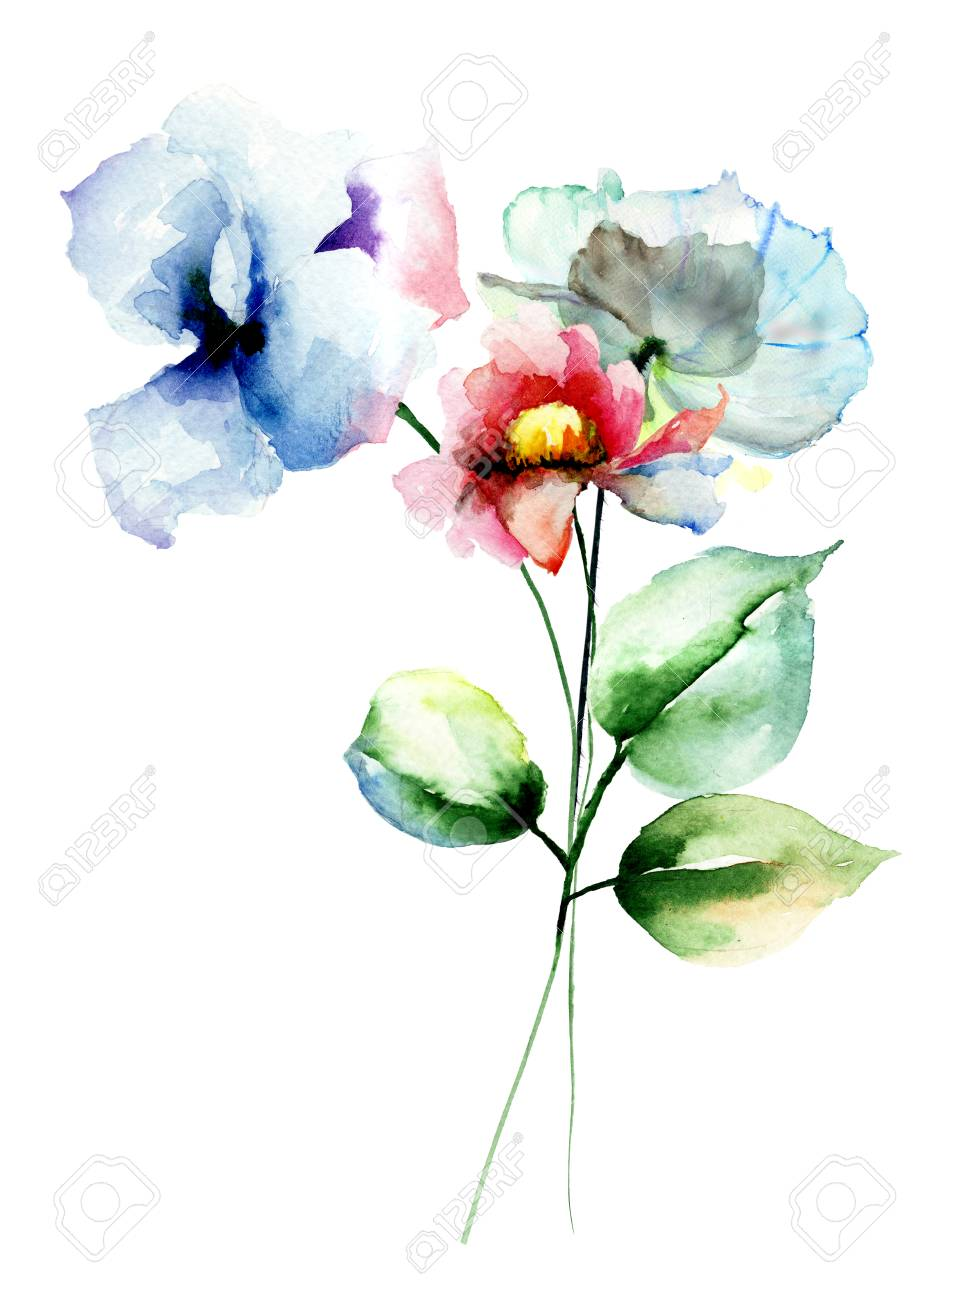 Fiori Watercolor.Stylized Flowers Watercolor Illustration Stock Photo Picture And